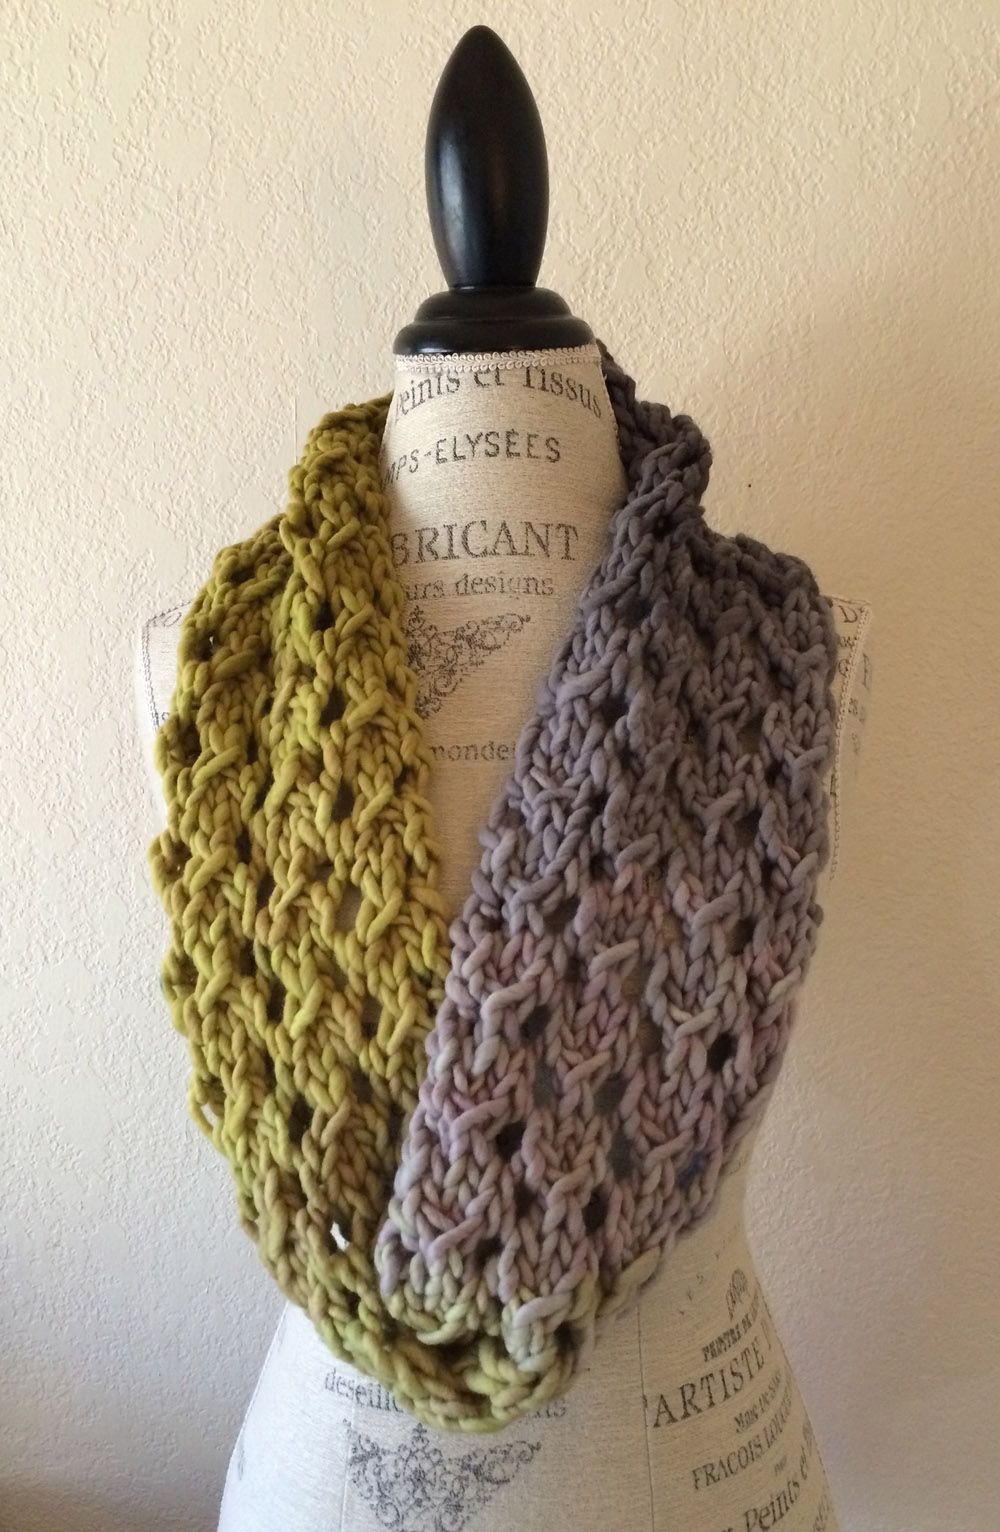 Bulky Lace Cowl - If you're looking for something simple, easy and fun to make for gifting, these cowl knitting patterns are perfect to do just that. #cowlknittingpatterns #knittingpatterns #wintercowlknittingpatterns